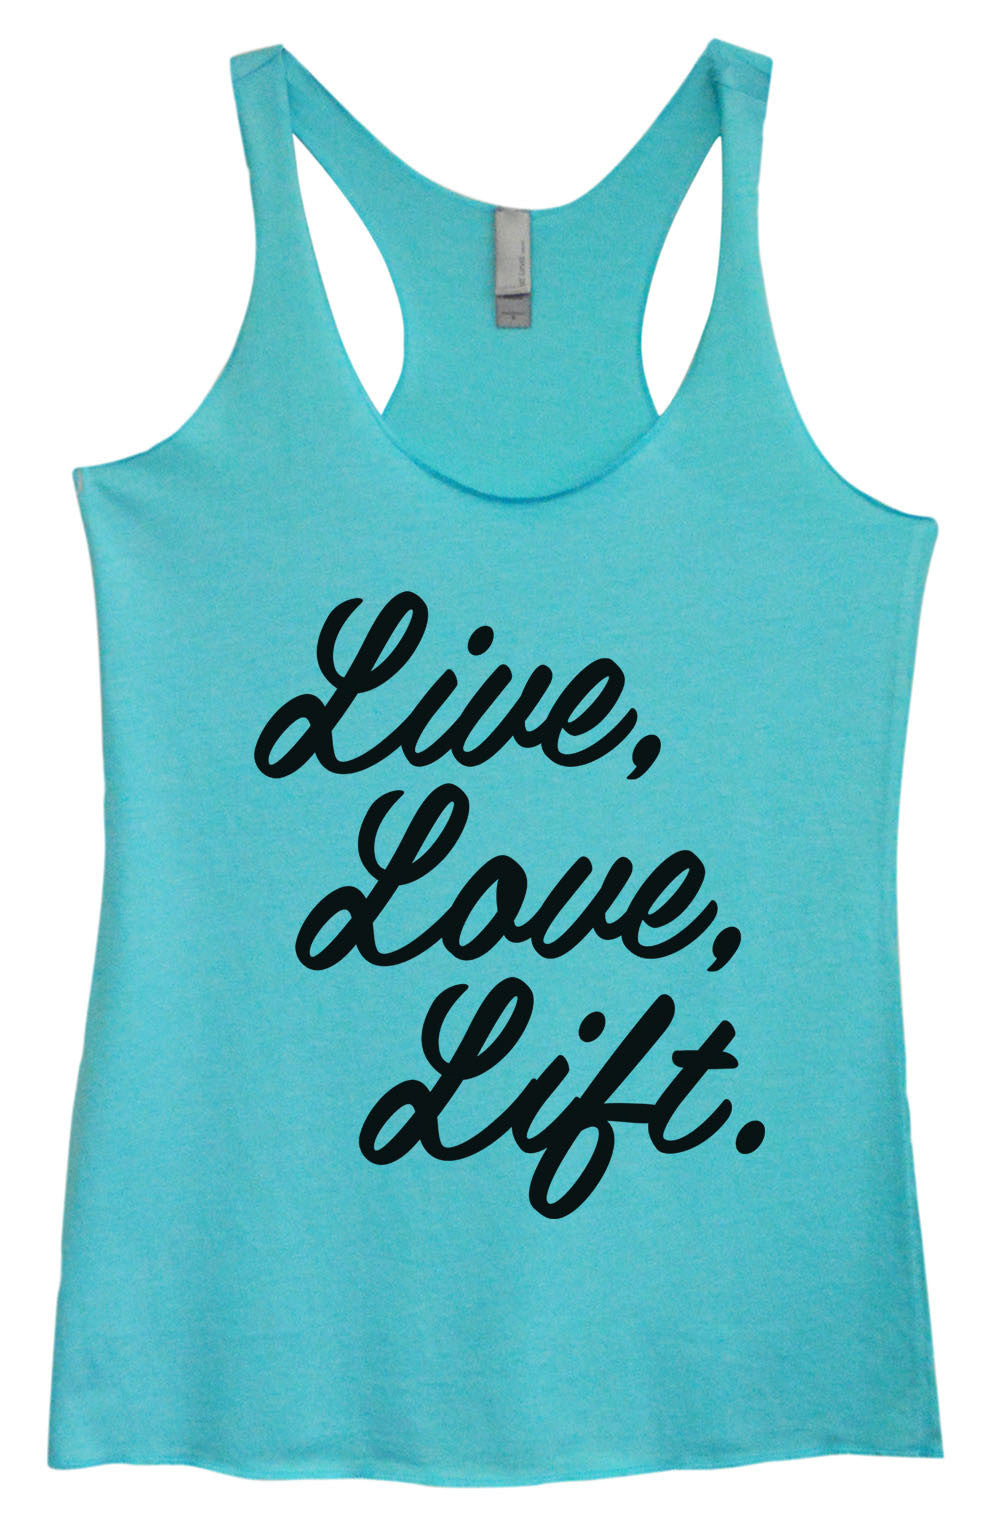 Womens Fashion Triblend Tank Top - Live, Love, Life. - Tri-1456 - Funny Shirts Tank Tops Burnouts and Triblends  - 1